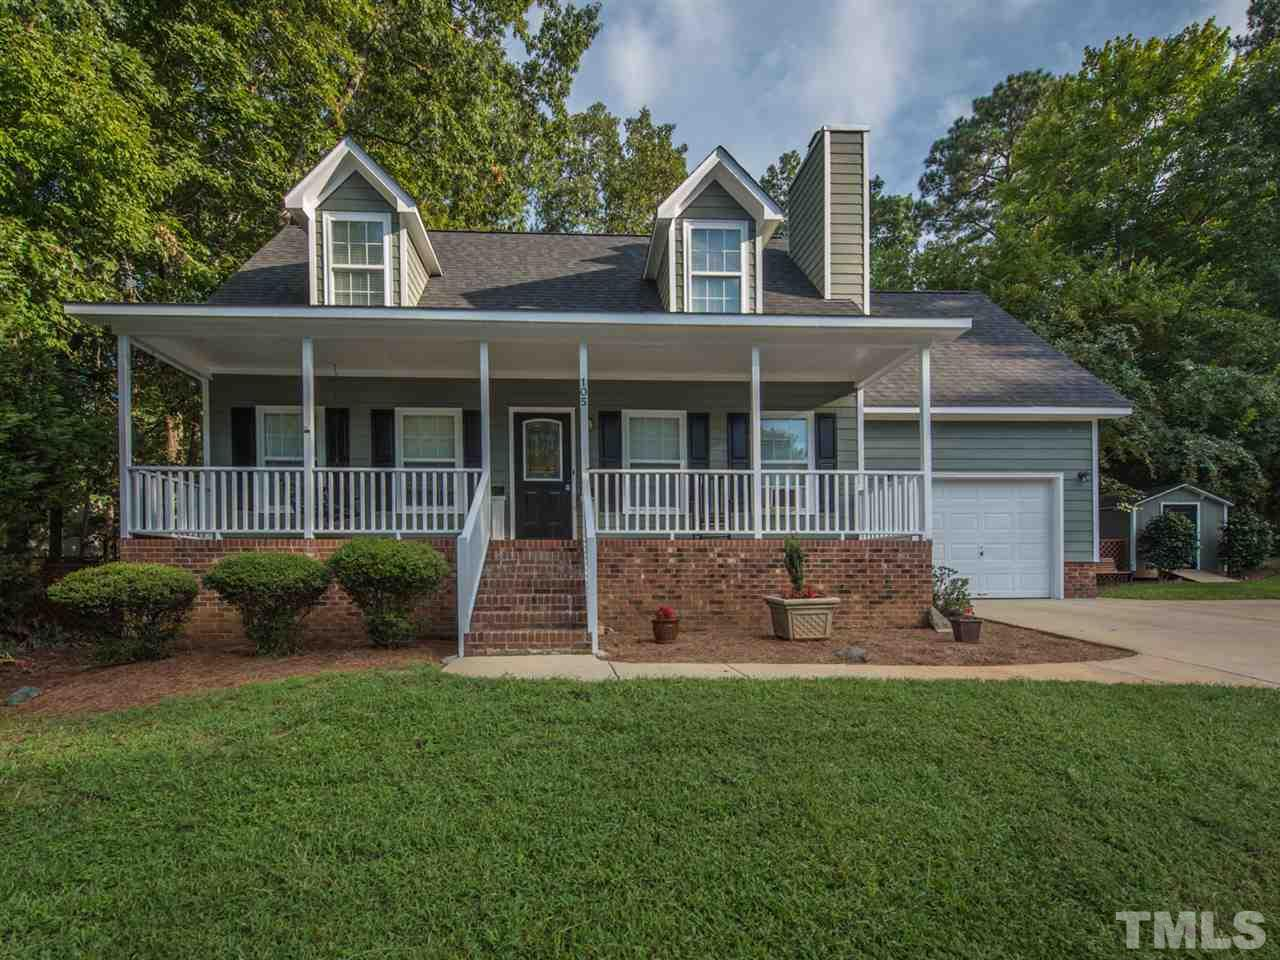 105 HOLLOWED COURT, HOLLY SPRINGS, NC 27540